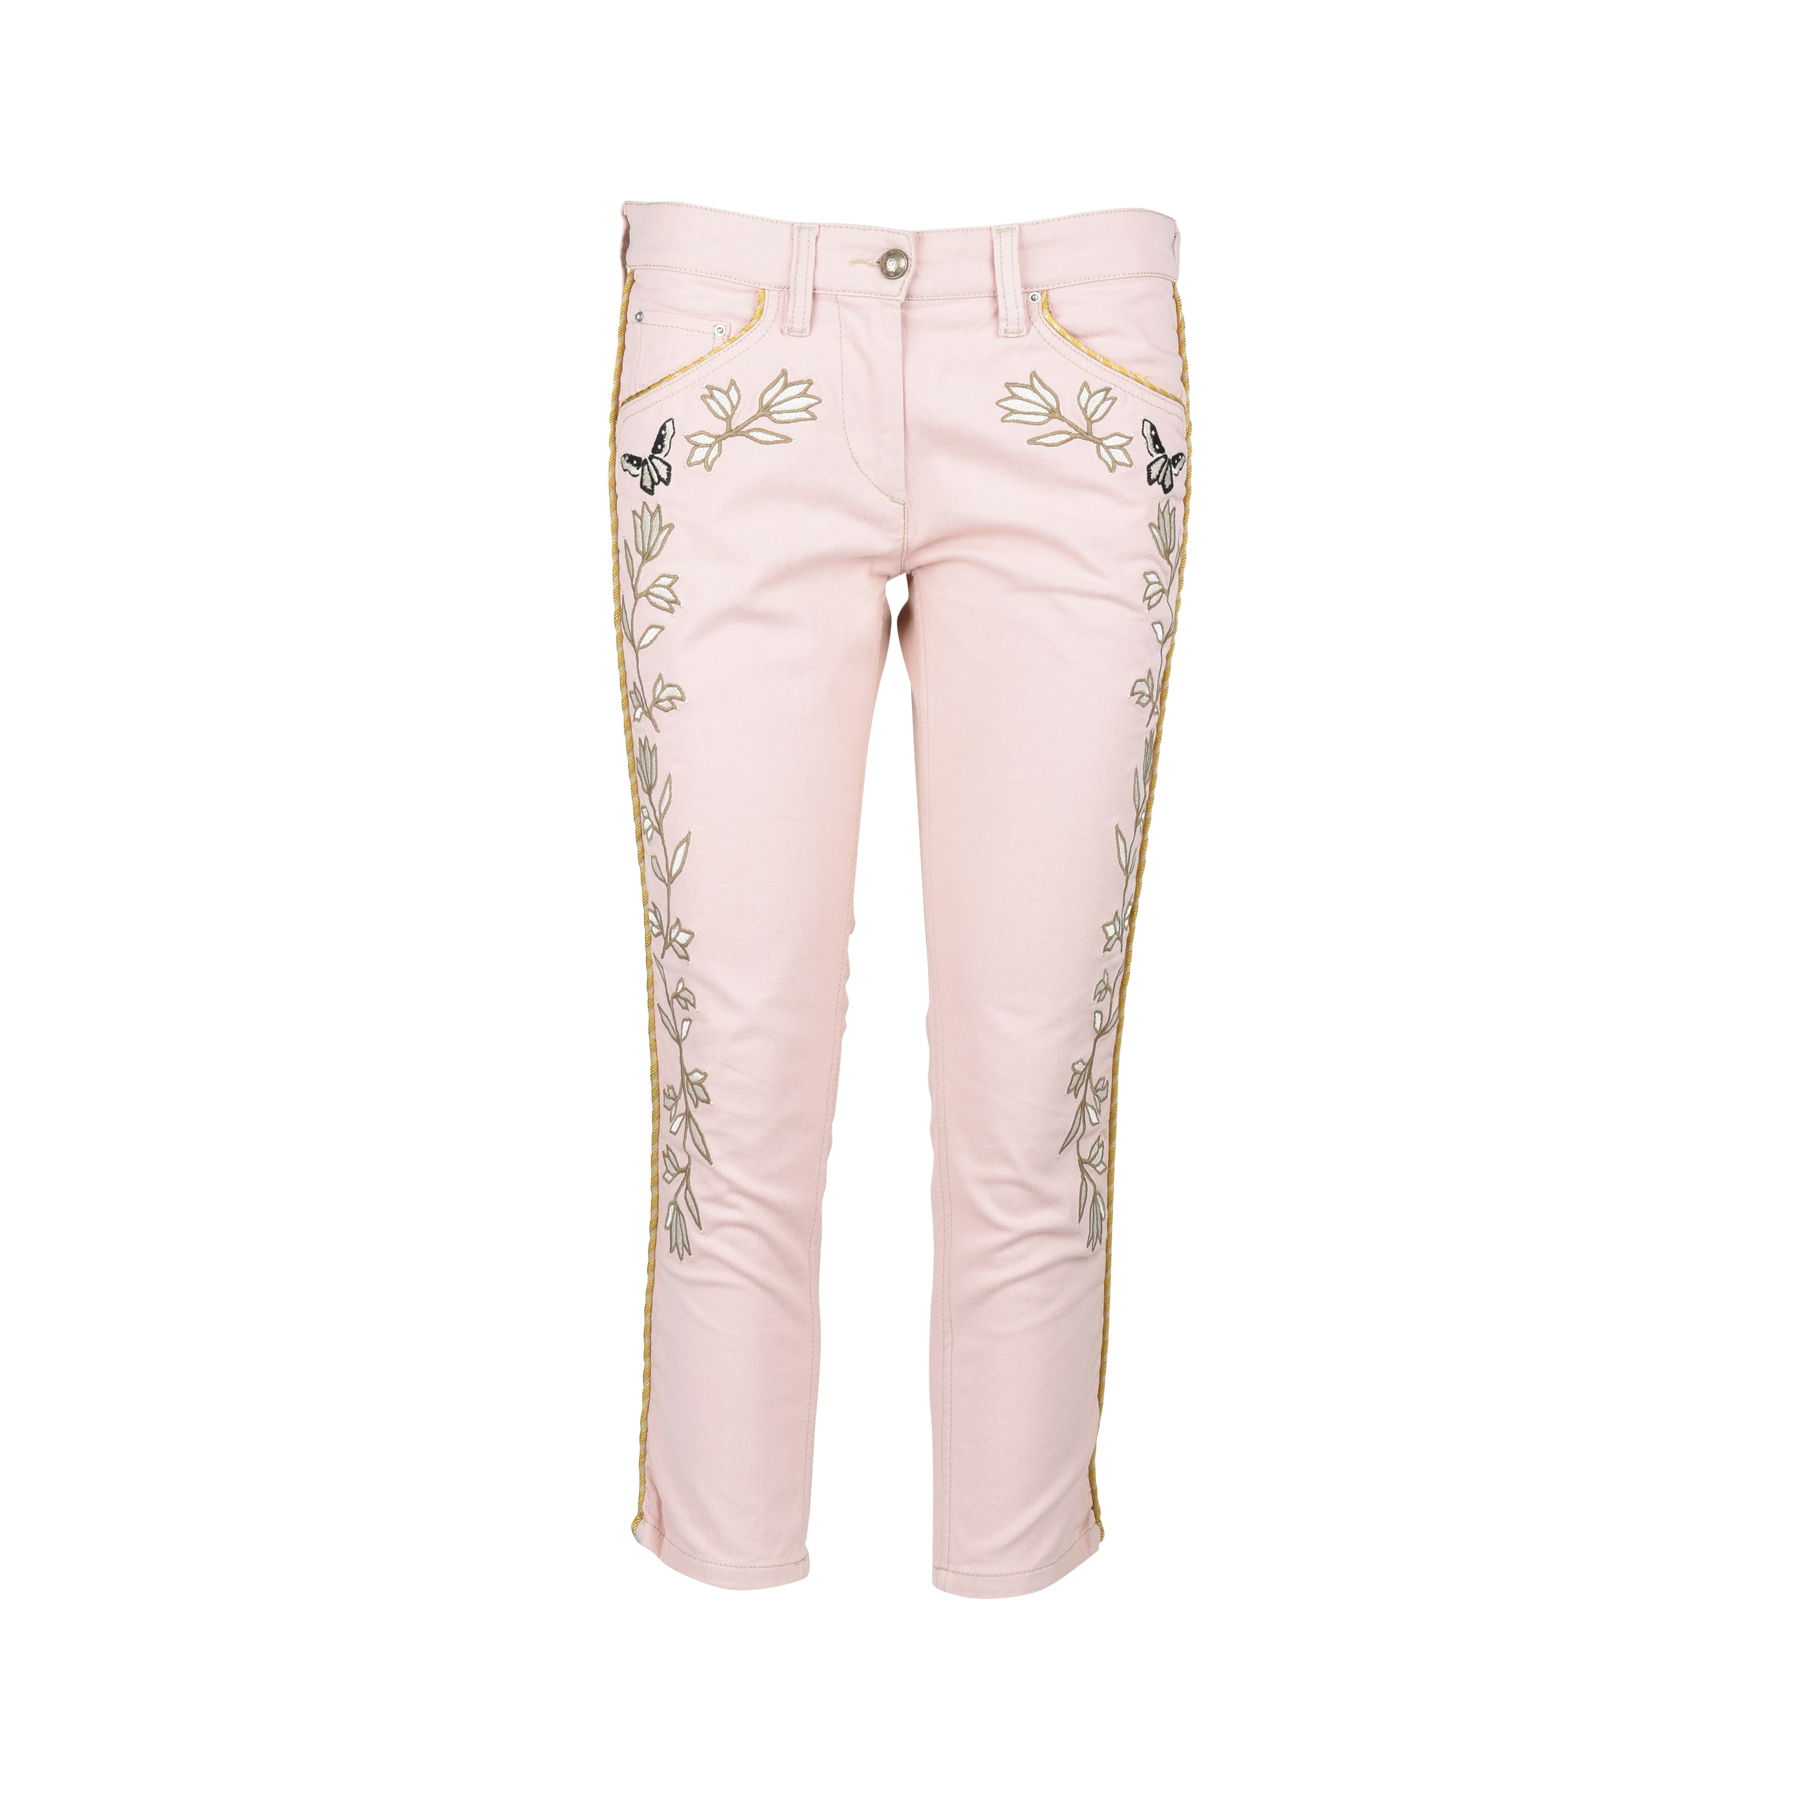 0e6f3b3a7c1 Authentic Second Hand Isabel Marant Monroe Embroidered Jeans  (PSS-097-00085)